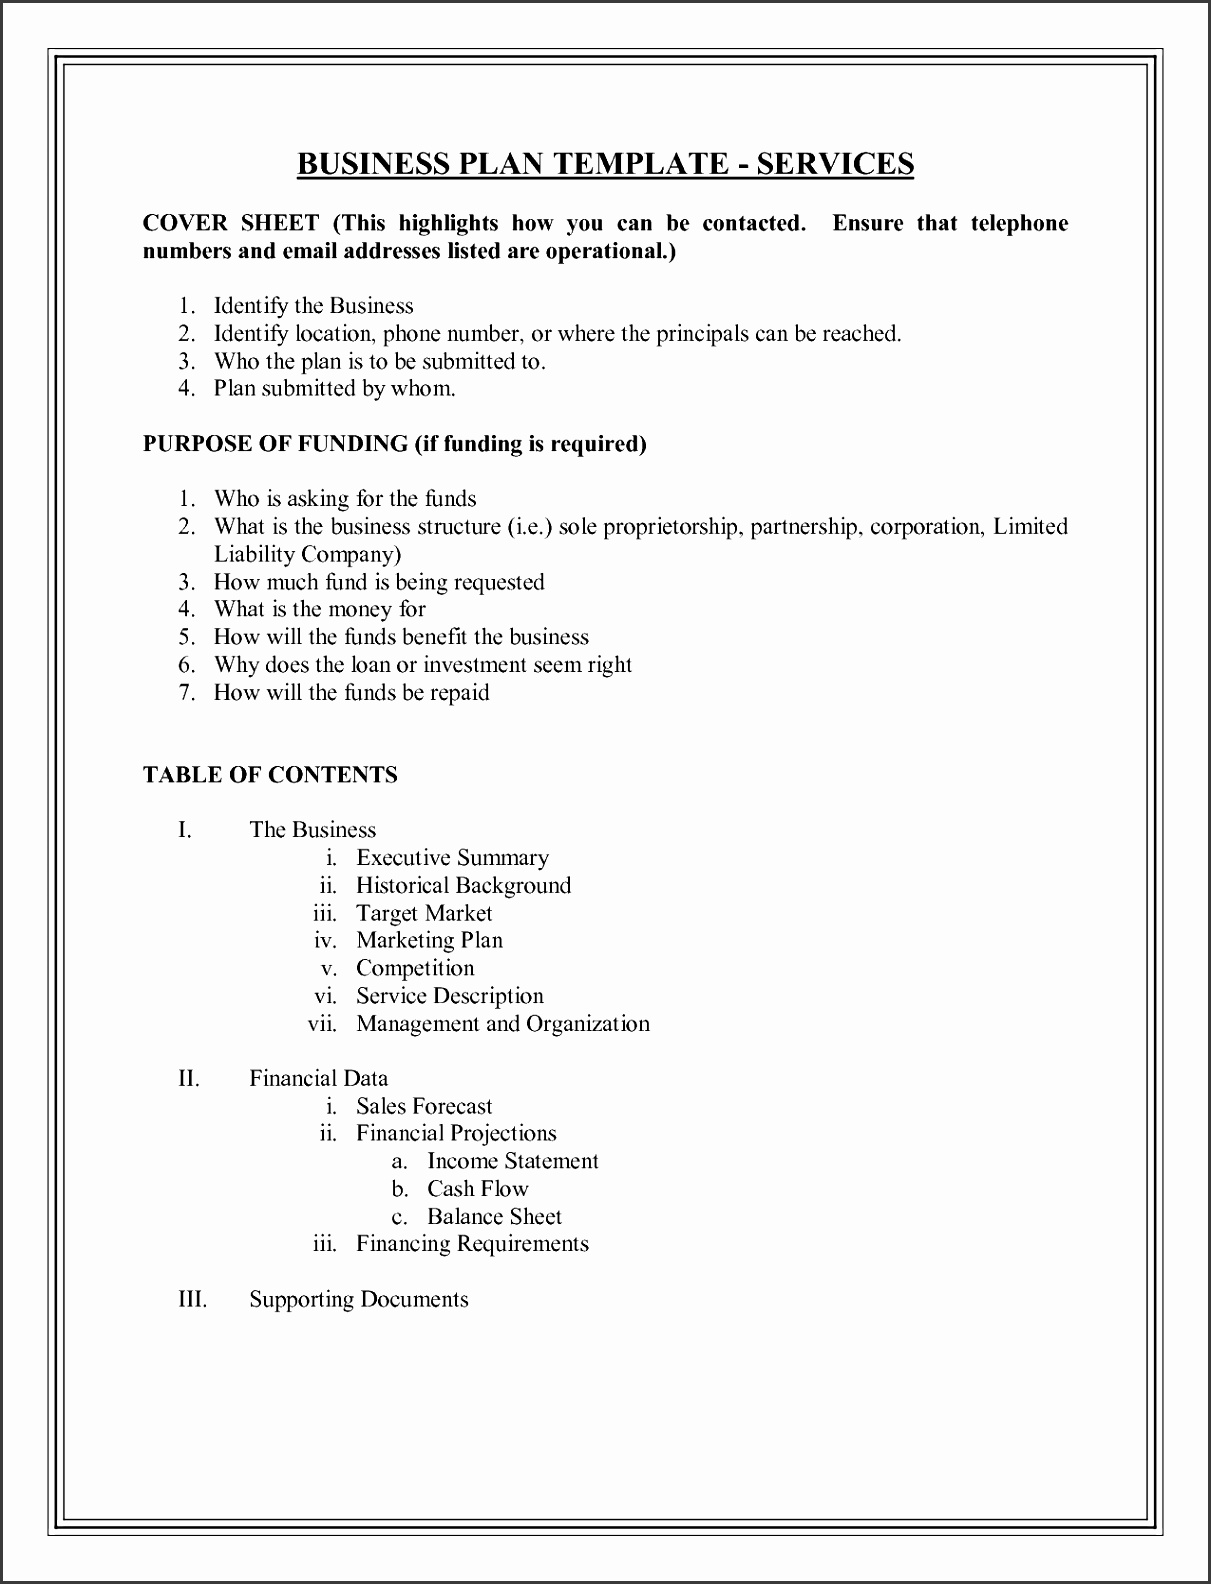 Best Business Plan Write Up How To A Pdf Free Small Business Plan Templates